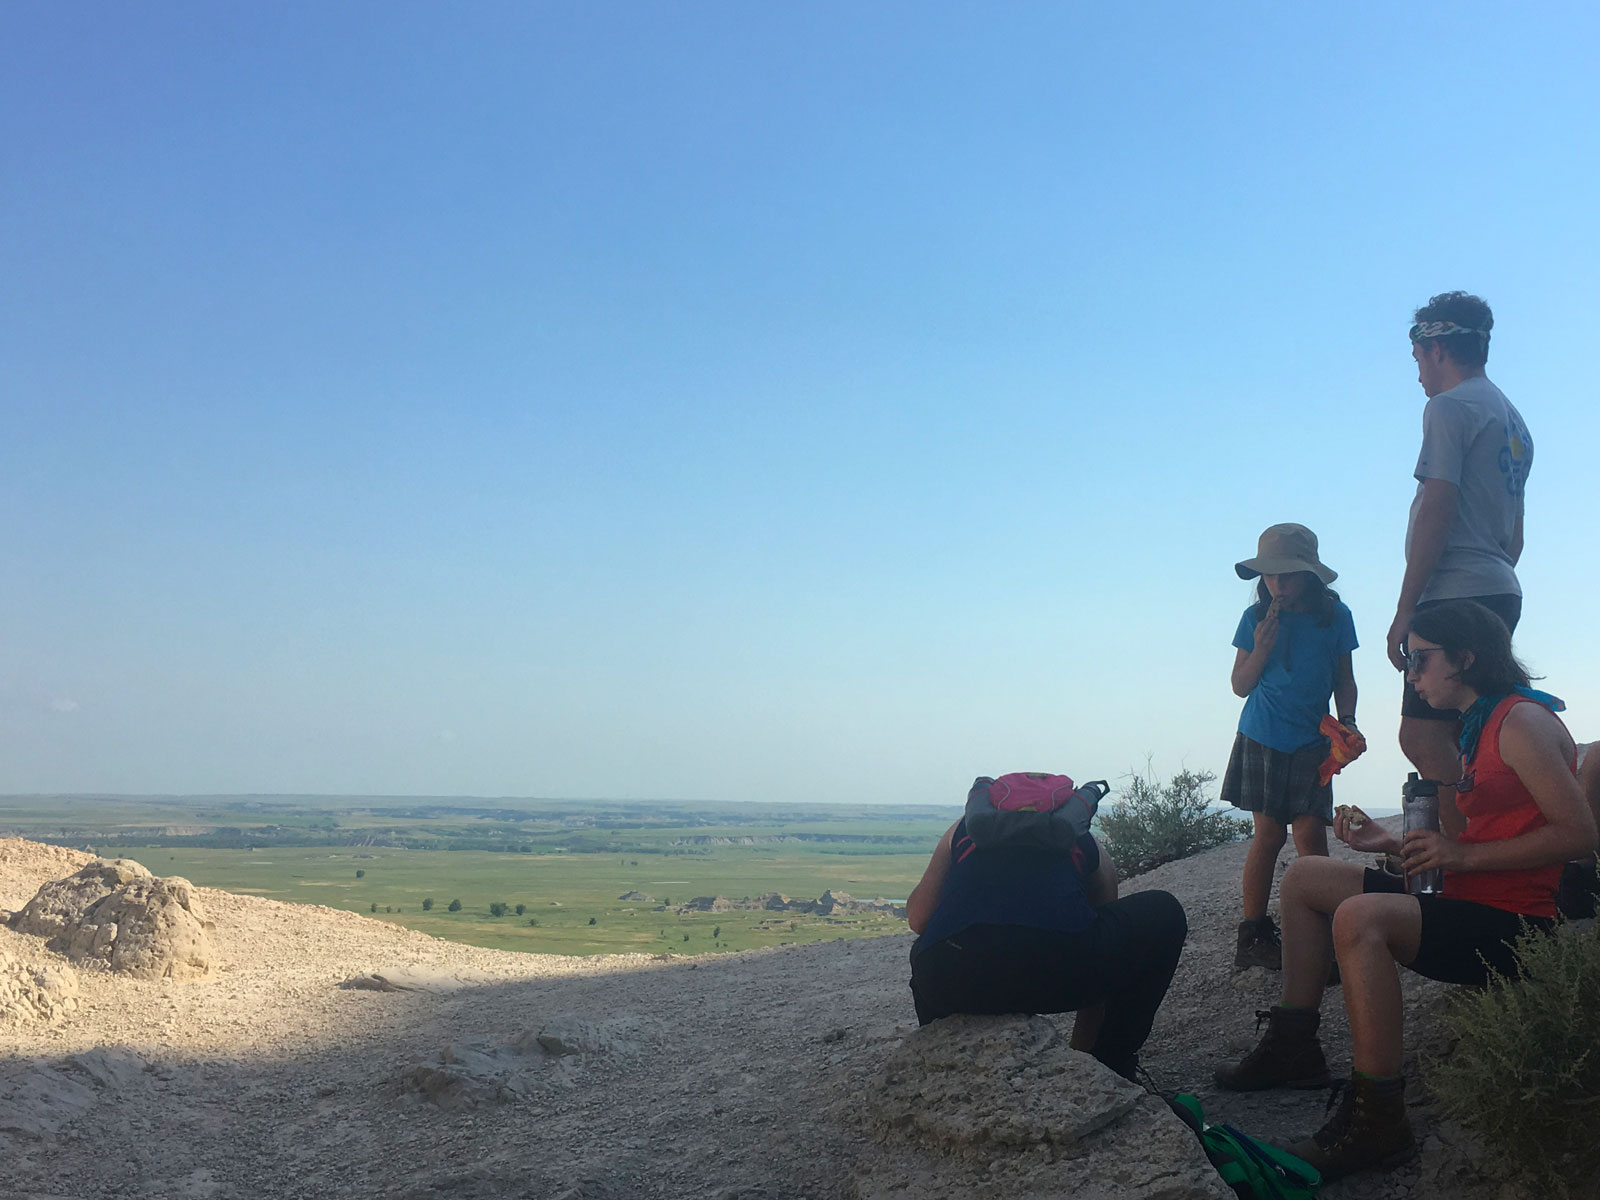 Family taking a break while overlooking the White River Valley in the Badlands National Park of South Dakota